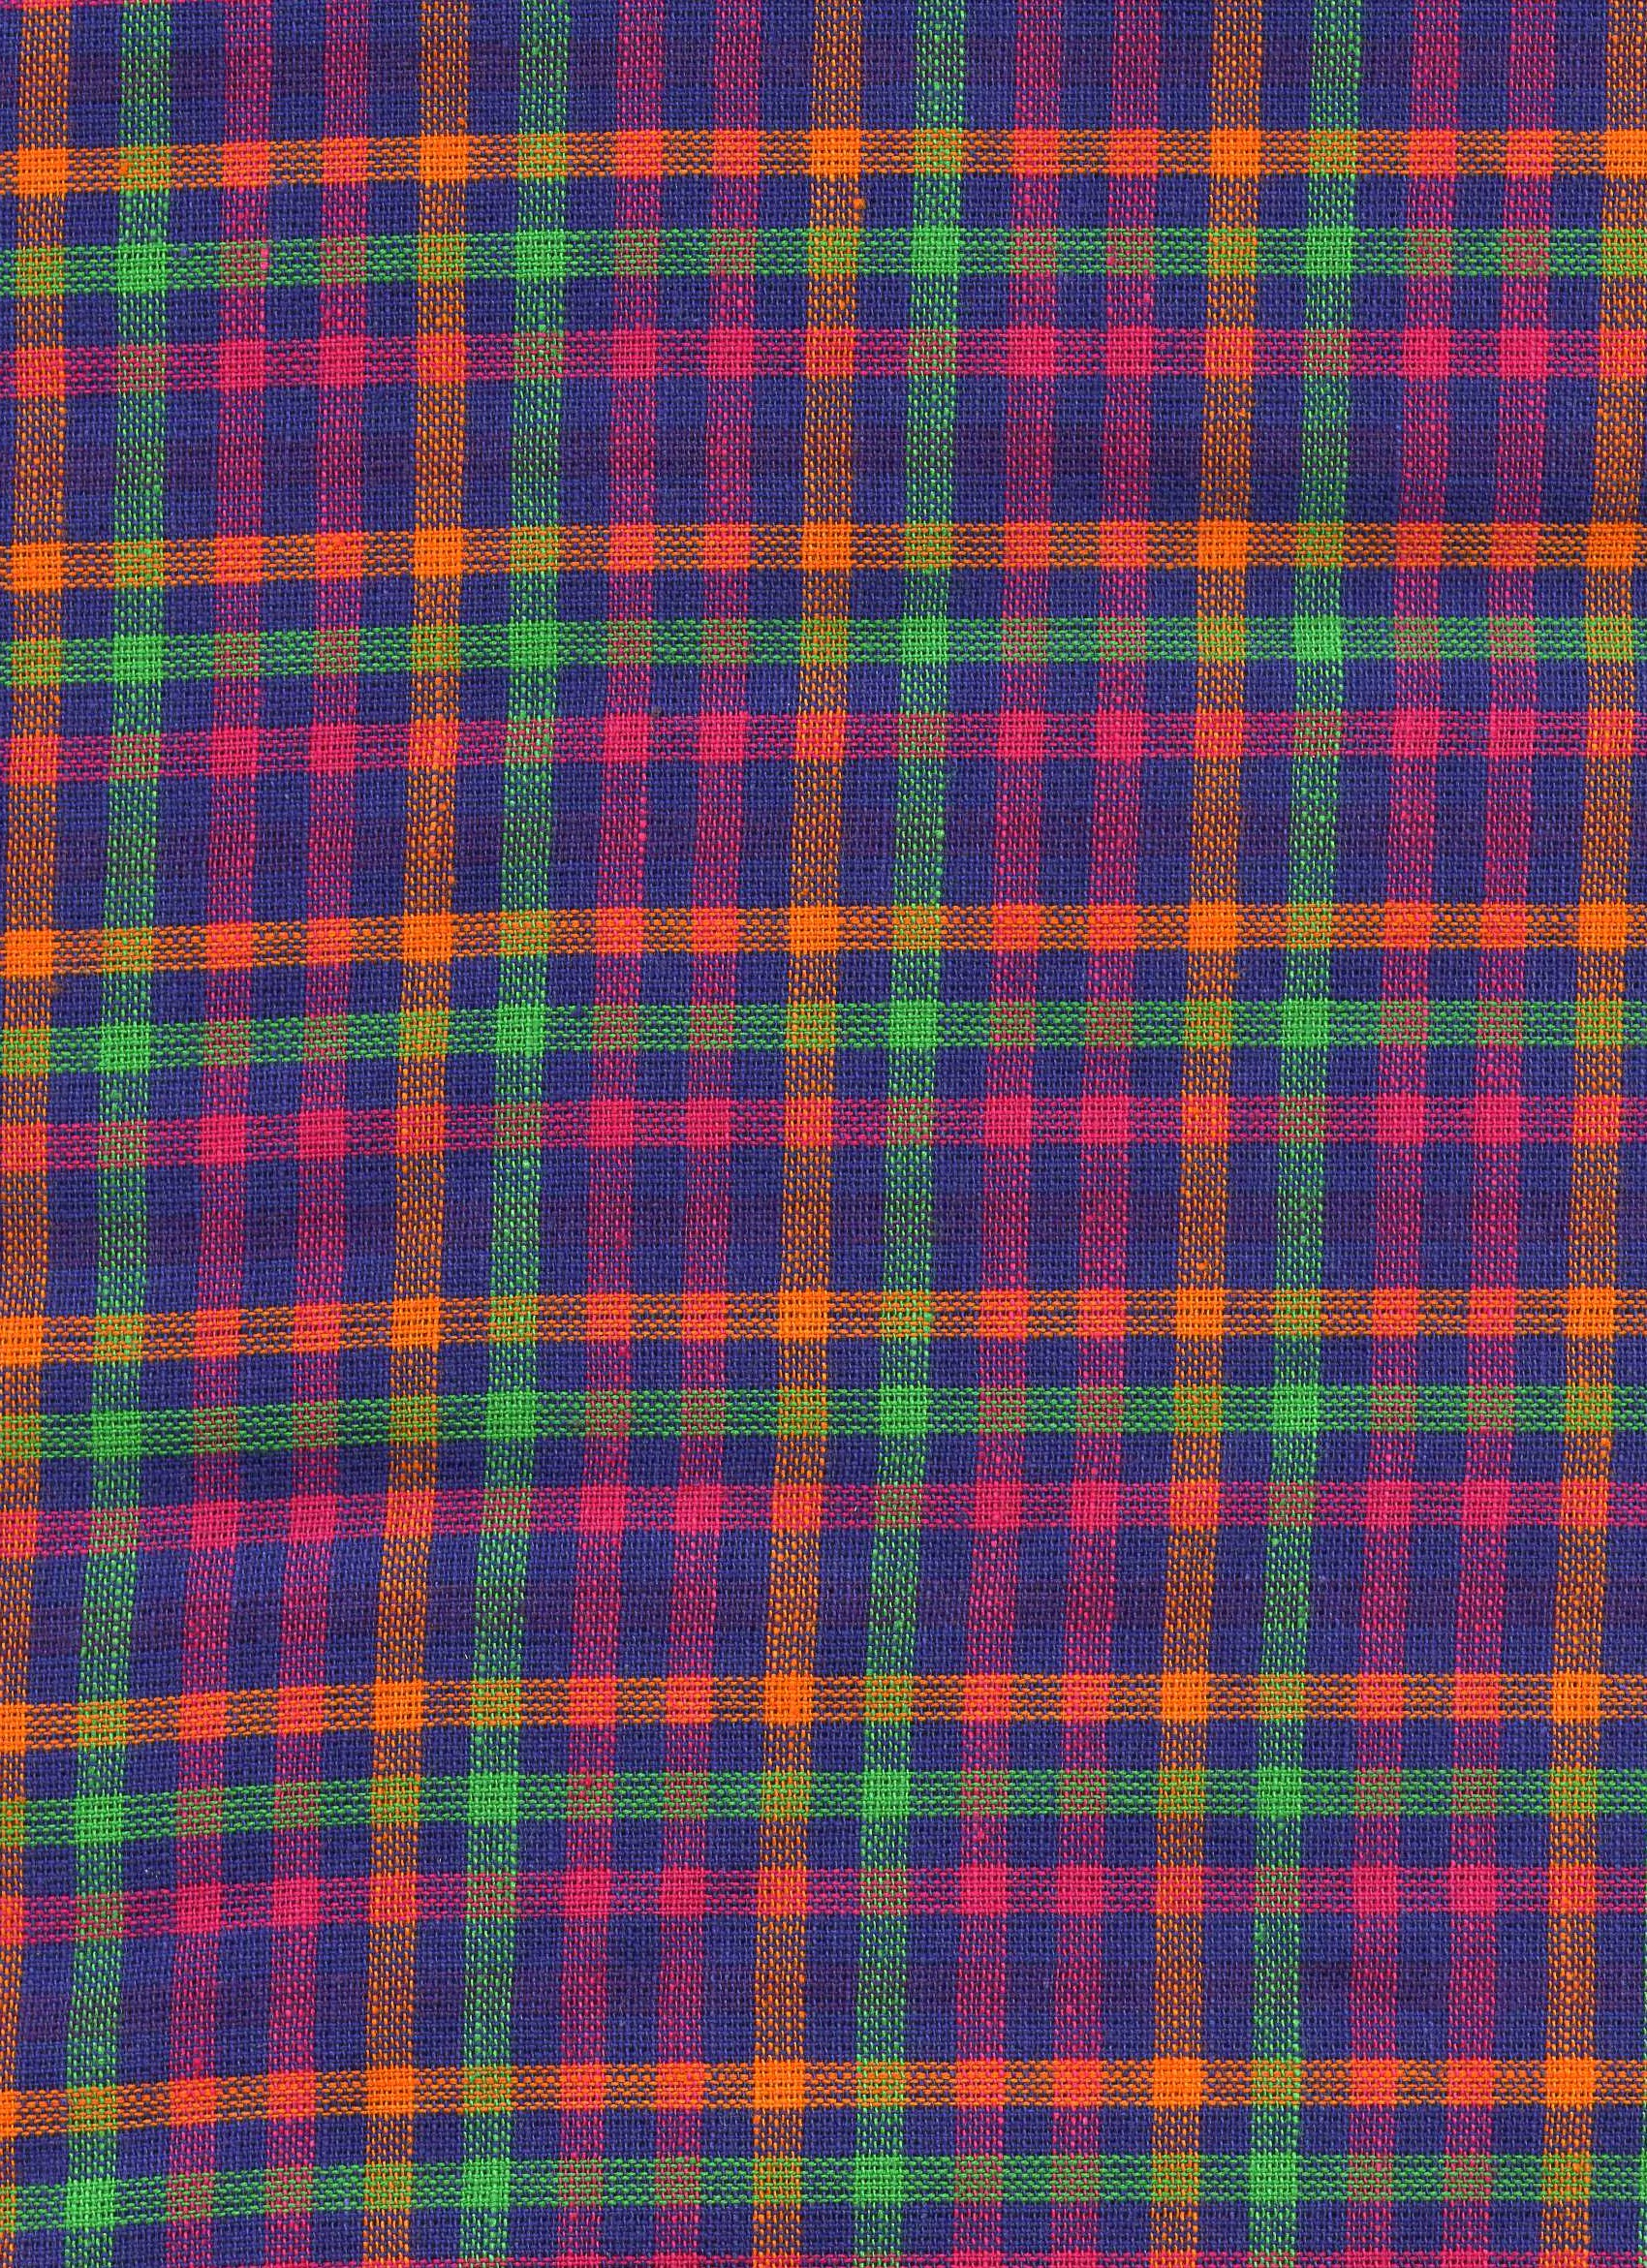 Pink, Orange and Green Plaid